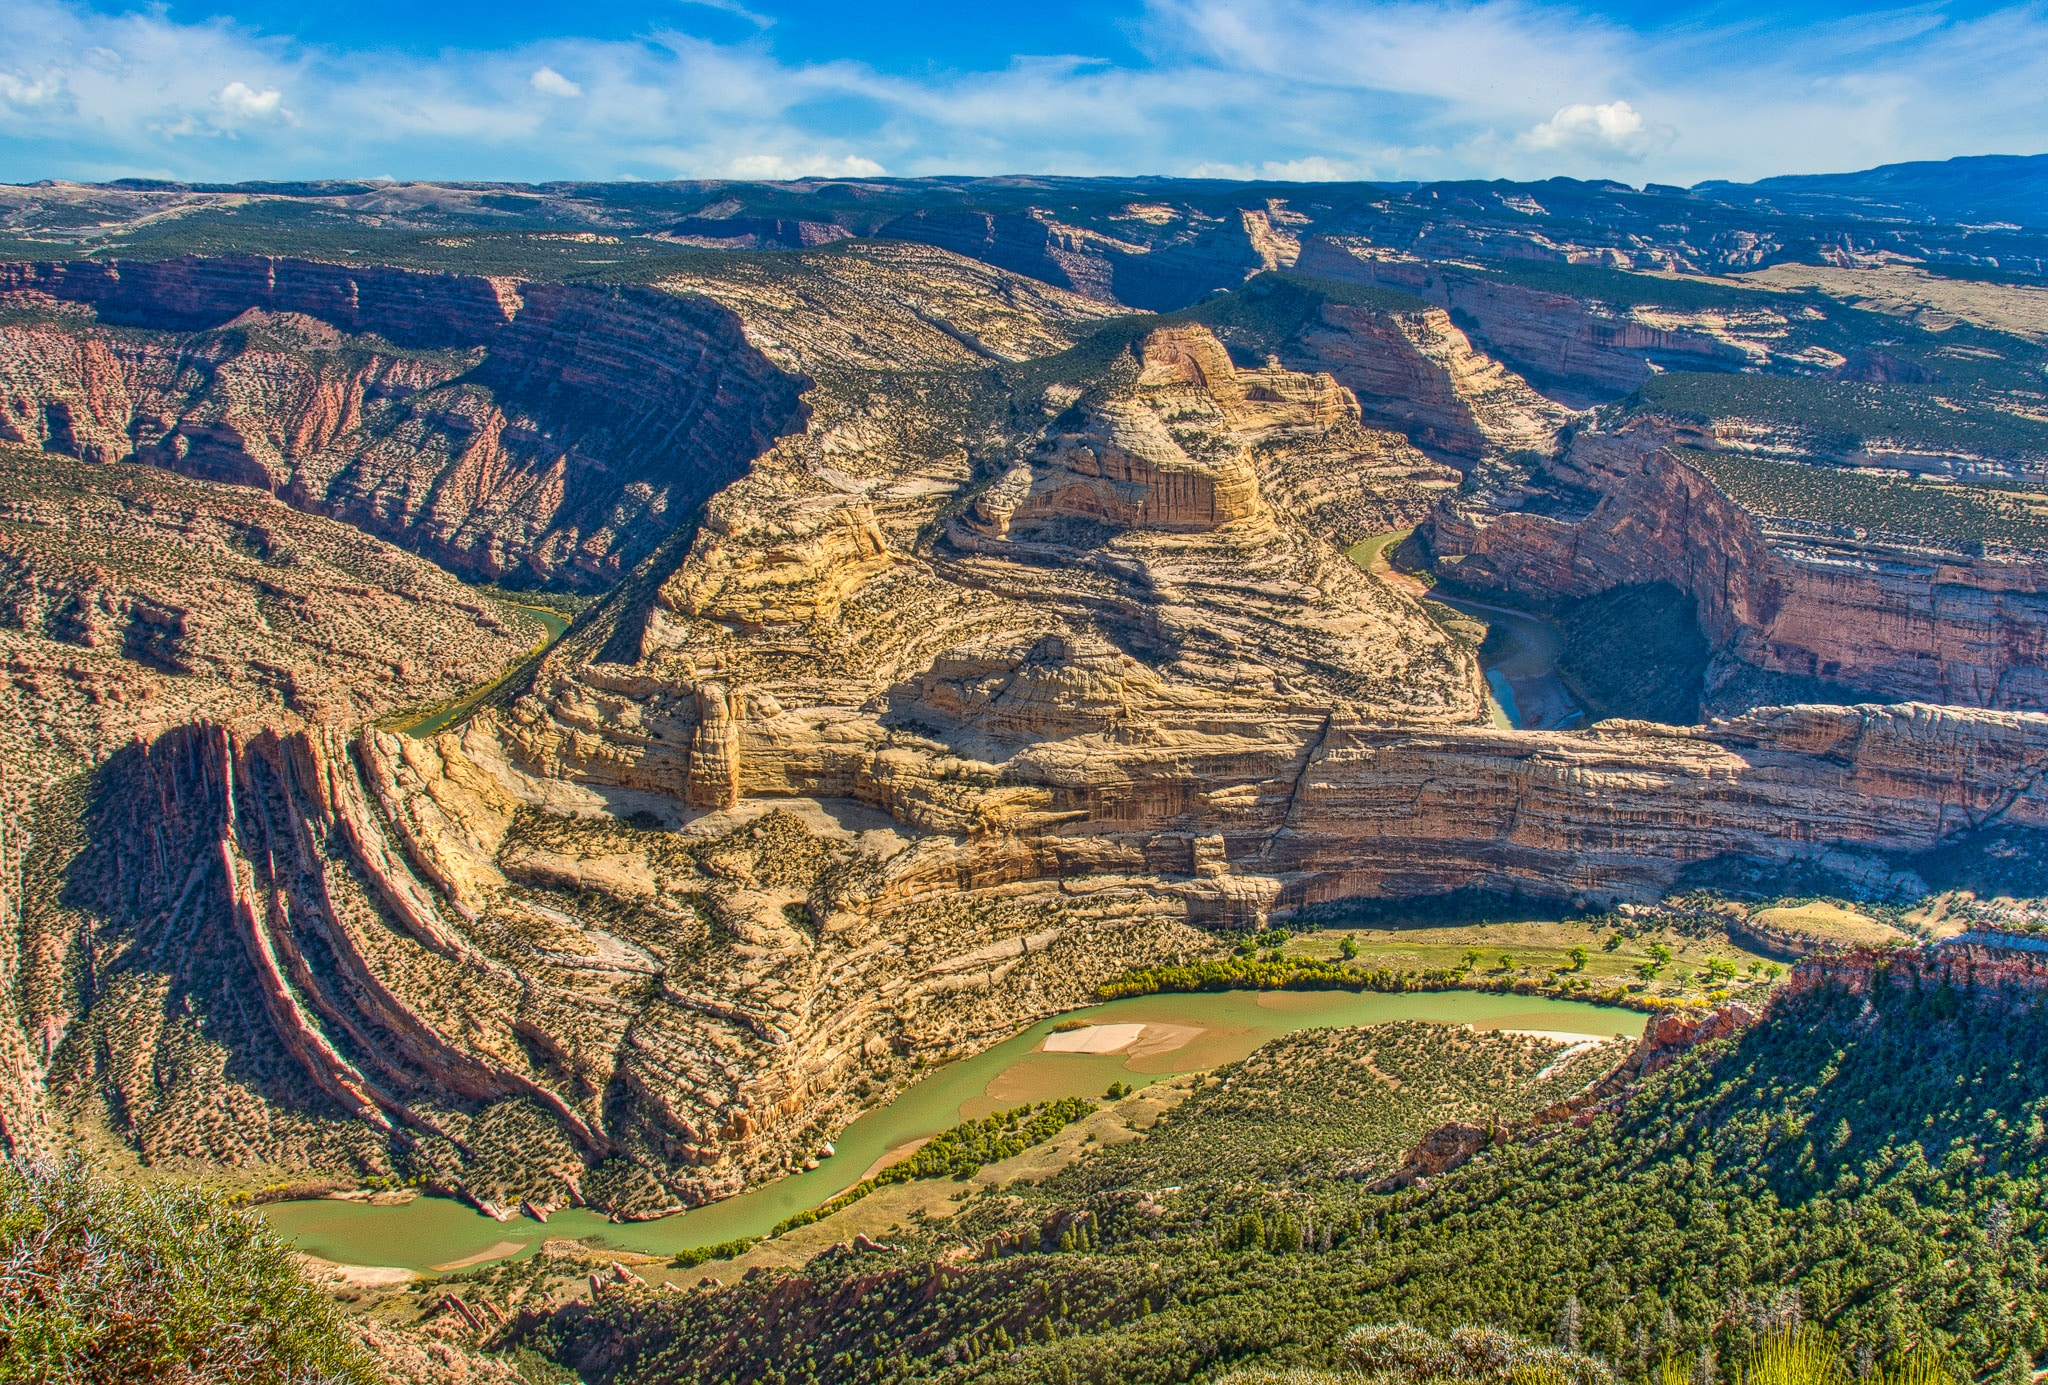 Rock strata upturned and twisted at the Mitten Park Fault in Dinosaur National Monument.